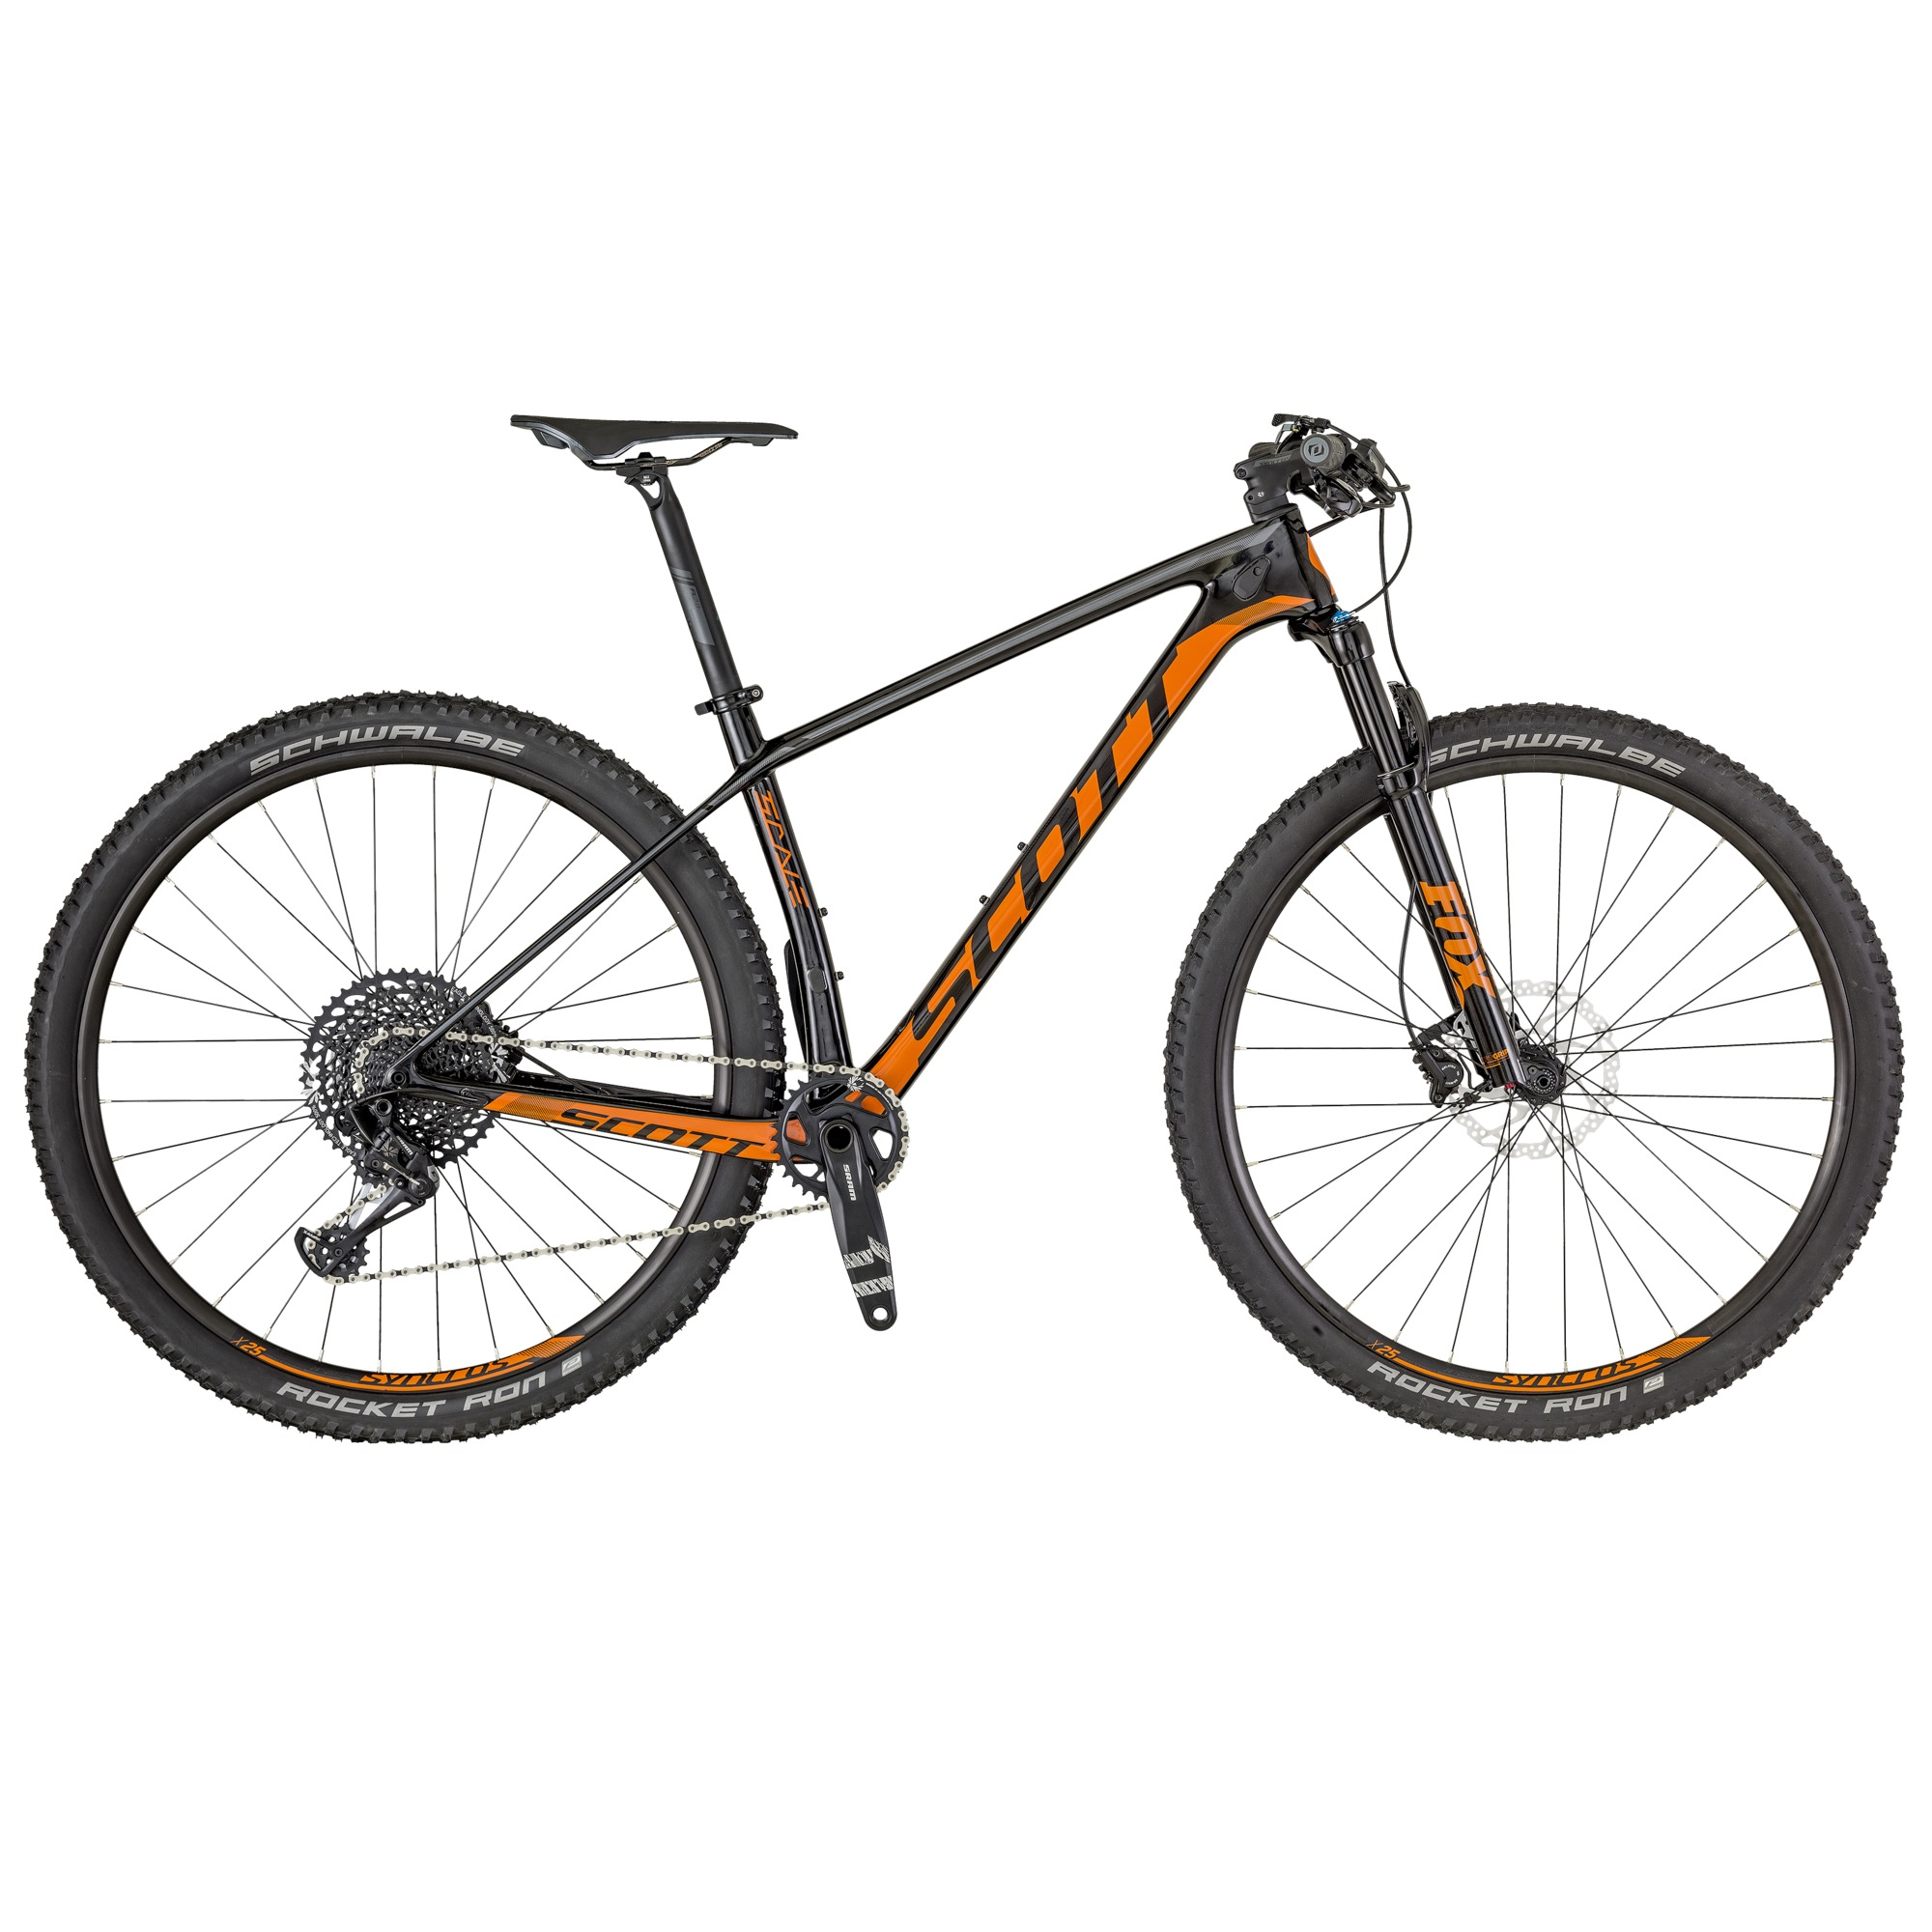 SCOTT Scale 925 Bike S - Zweirad Homann